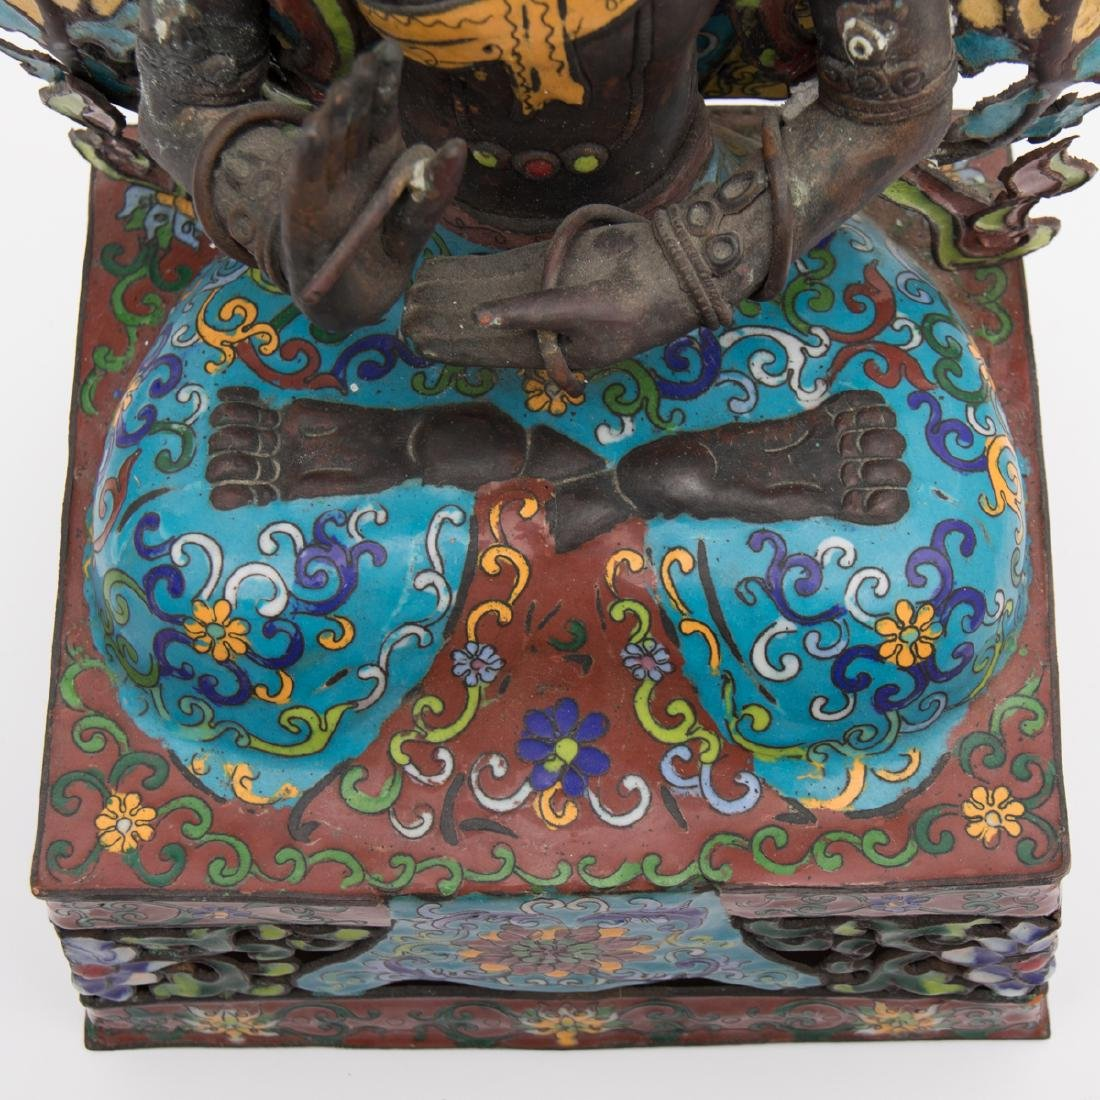 A Tibetan Cloisonné and Metal Firugre of a Deity, 20th - 5